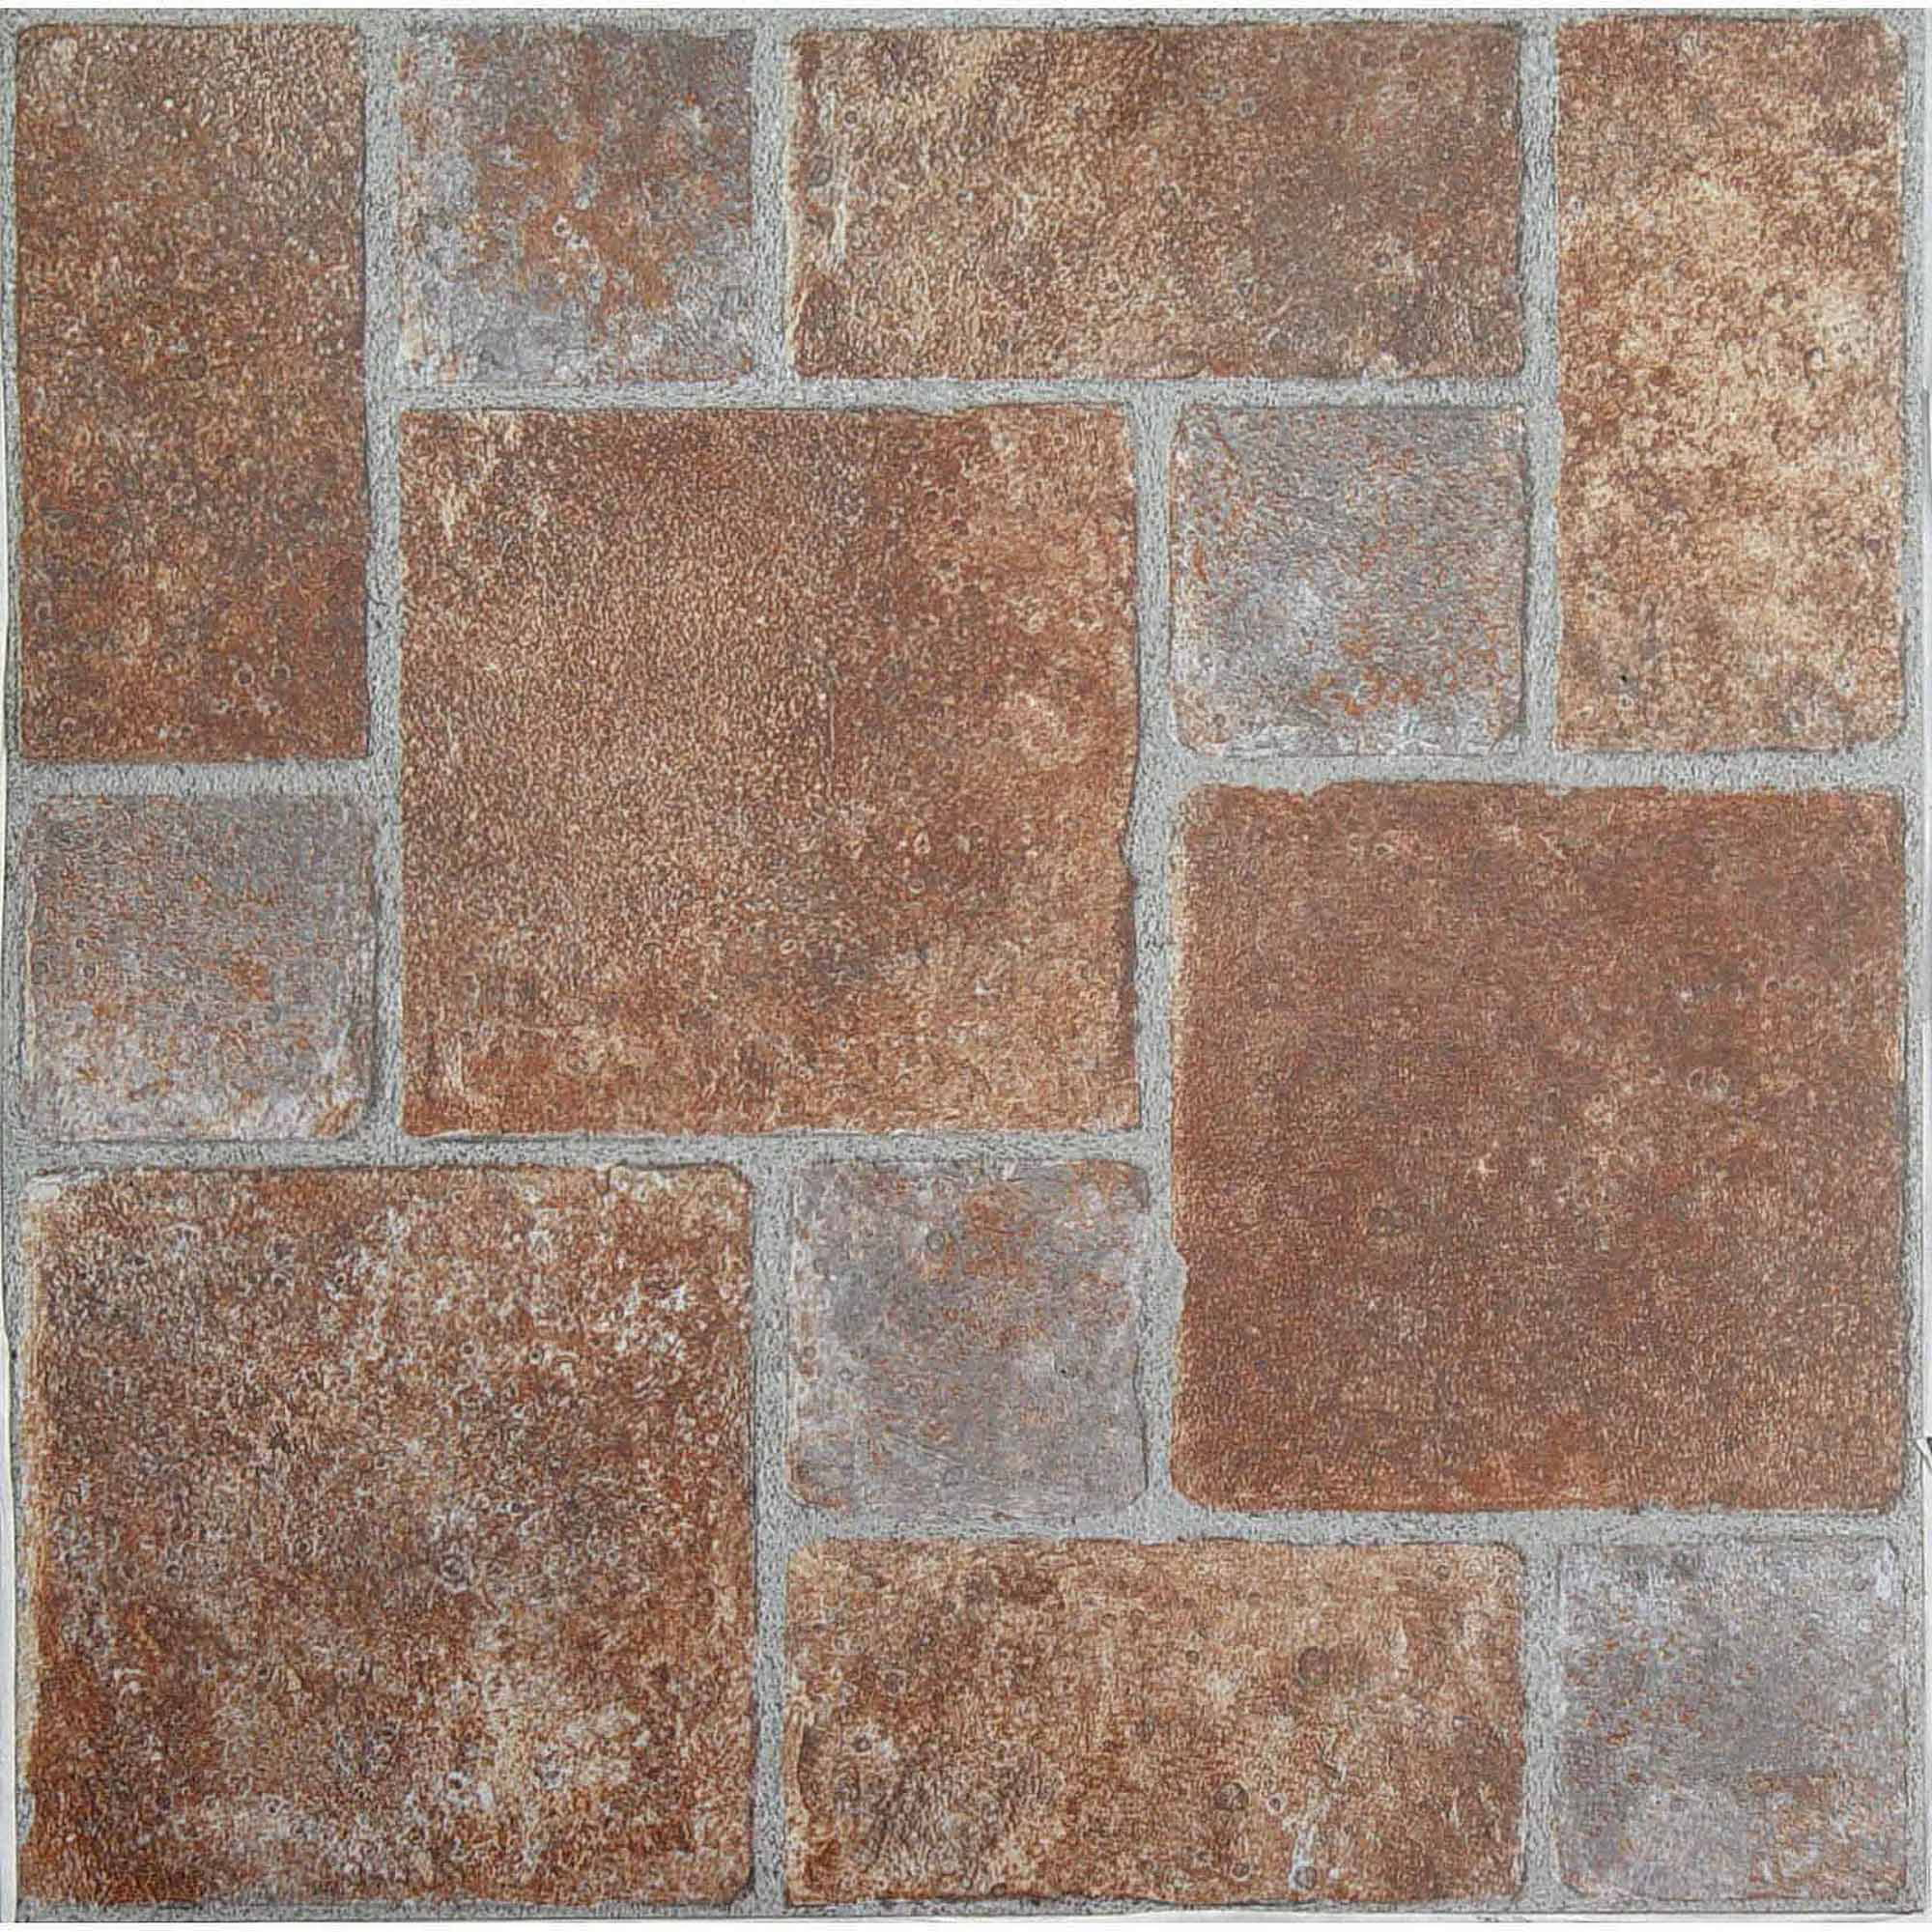 nexus brick pavers 12x12 self adhesive vinyl floor tile 20 tiles20 sqft walmartcom - Peel And Stick Flooring